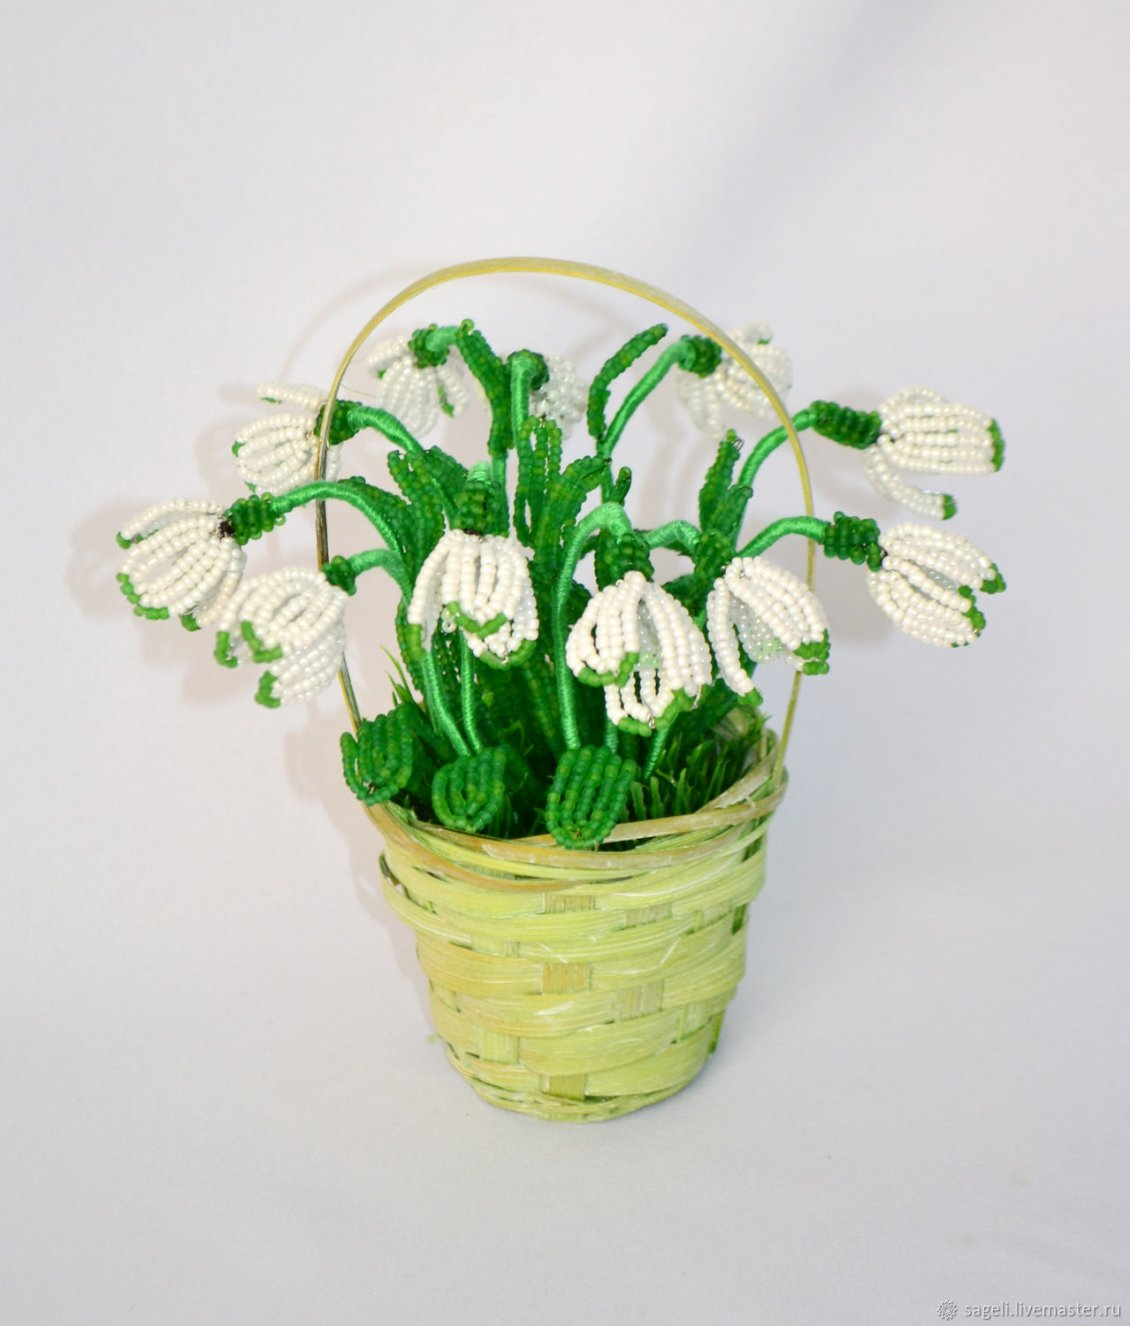 Download Wallpaper Abstract snowdrops flower in a basket - Spring gift